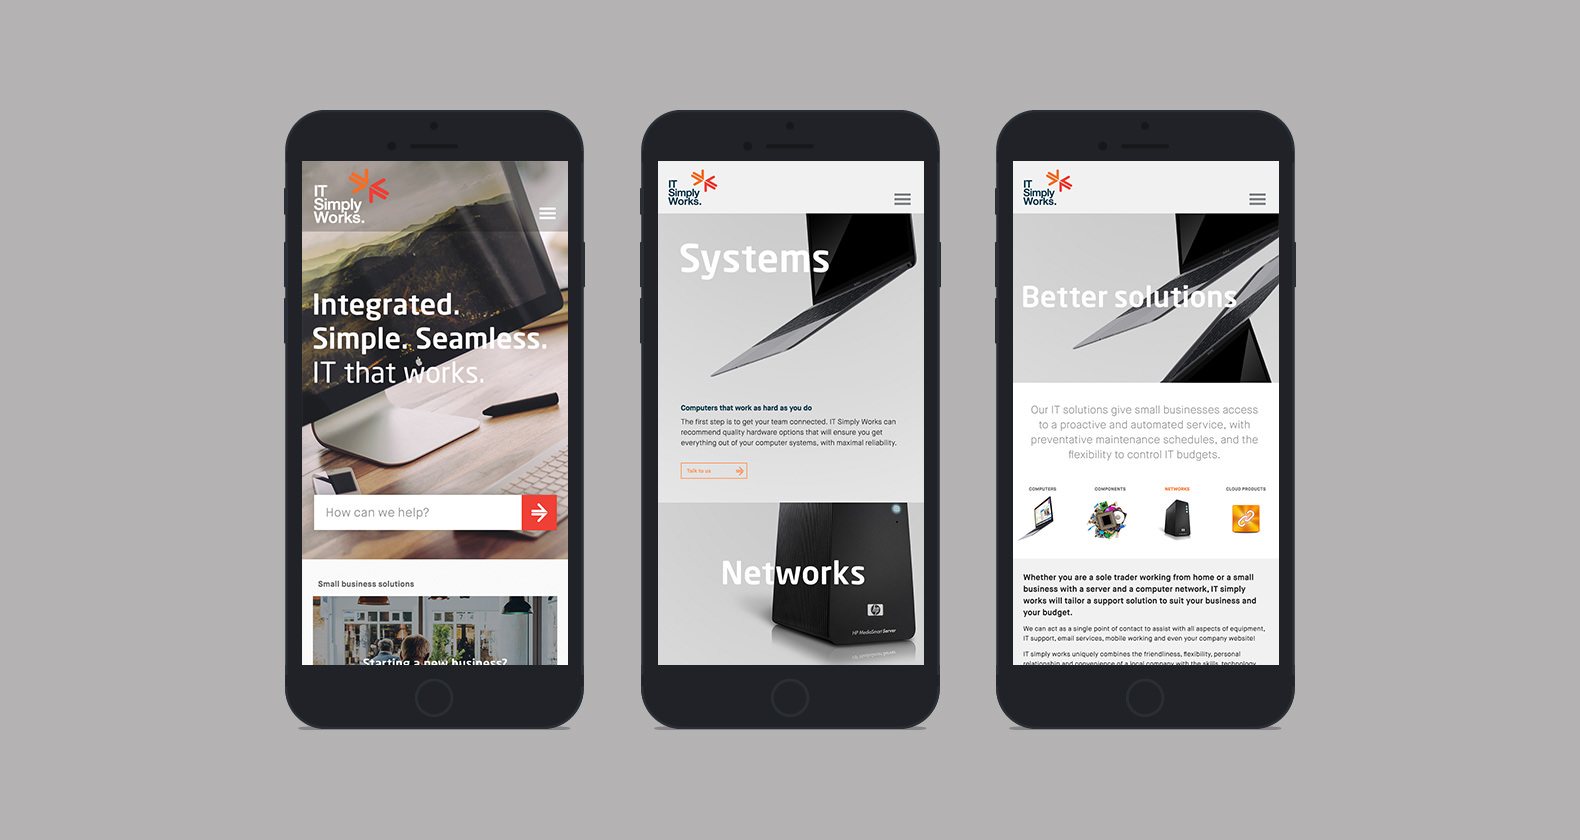 IT Simply Works - Responsive mobile web design